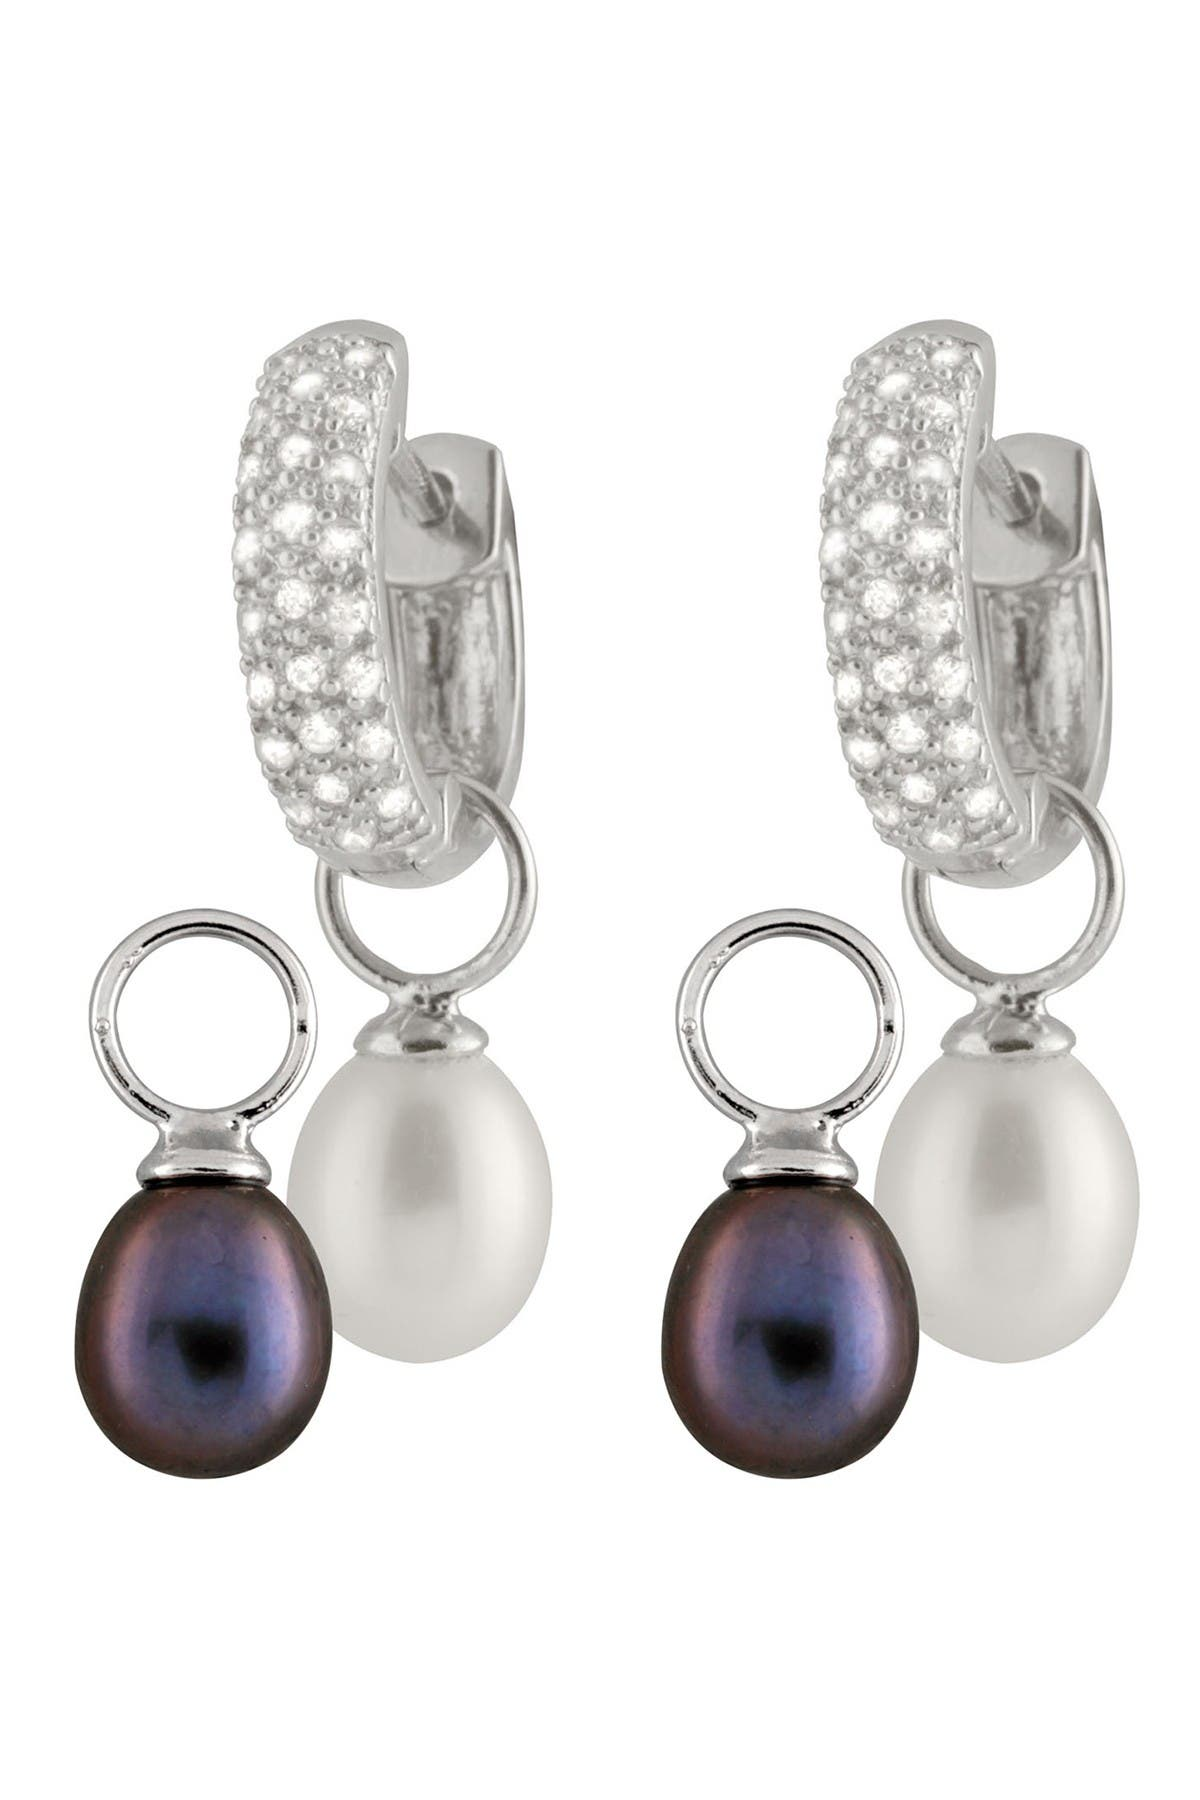 Splendid Pearls 8-8.5mm Black & White Interchangeable Cultured Freshwater Pearl Day & Night Earrings at Nordstrom Rack